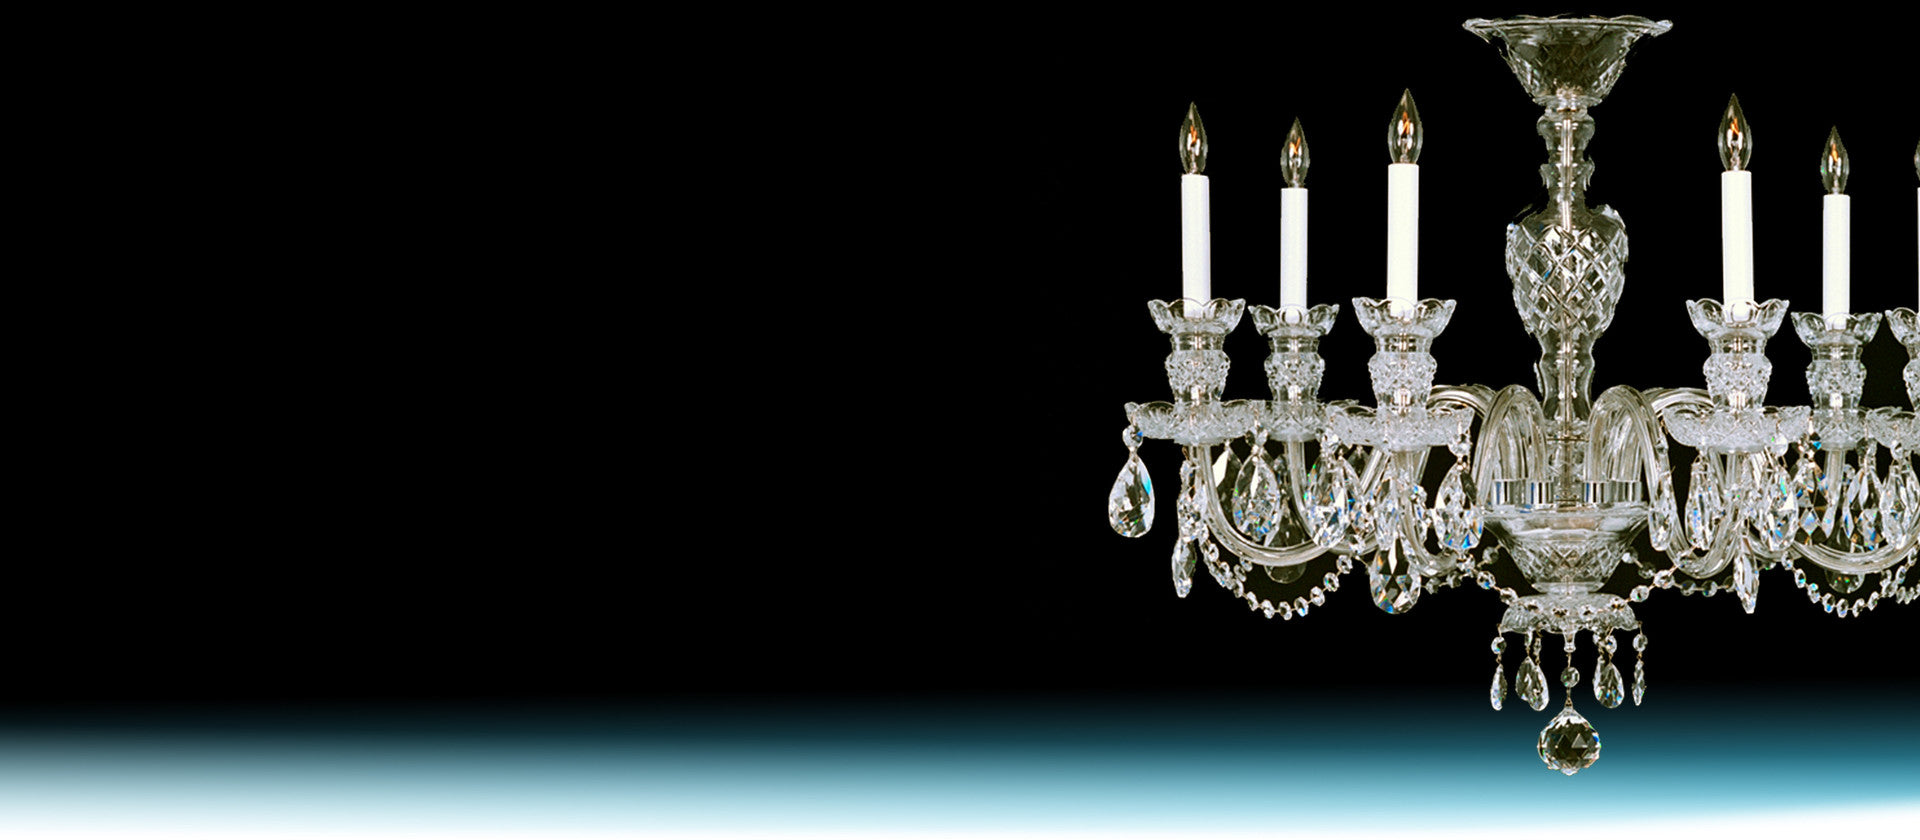 Specializing in Crystal Chandeliers and Sconces